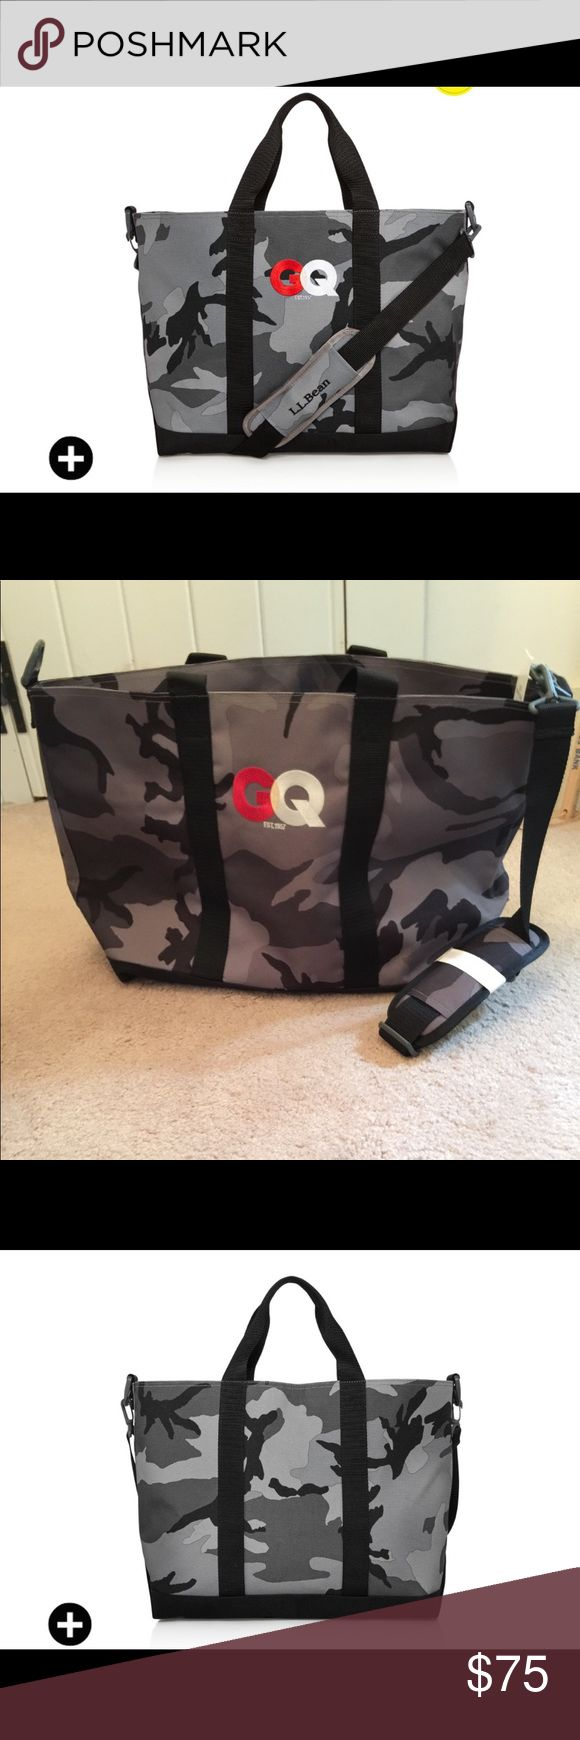 L.L. Bean special edition GQ 60 tote %  authentic L.L. Bean special edition GQ 60 tote NWT  Camouflage tote with iconic GQ logo denier poly exterior shell  thermoplastic interior adjustable nylon shoulder strap reinforced bottom ( 17 L x 15 H x 7 D)  camouflage never been used L.L. Bean Bags